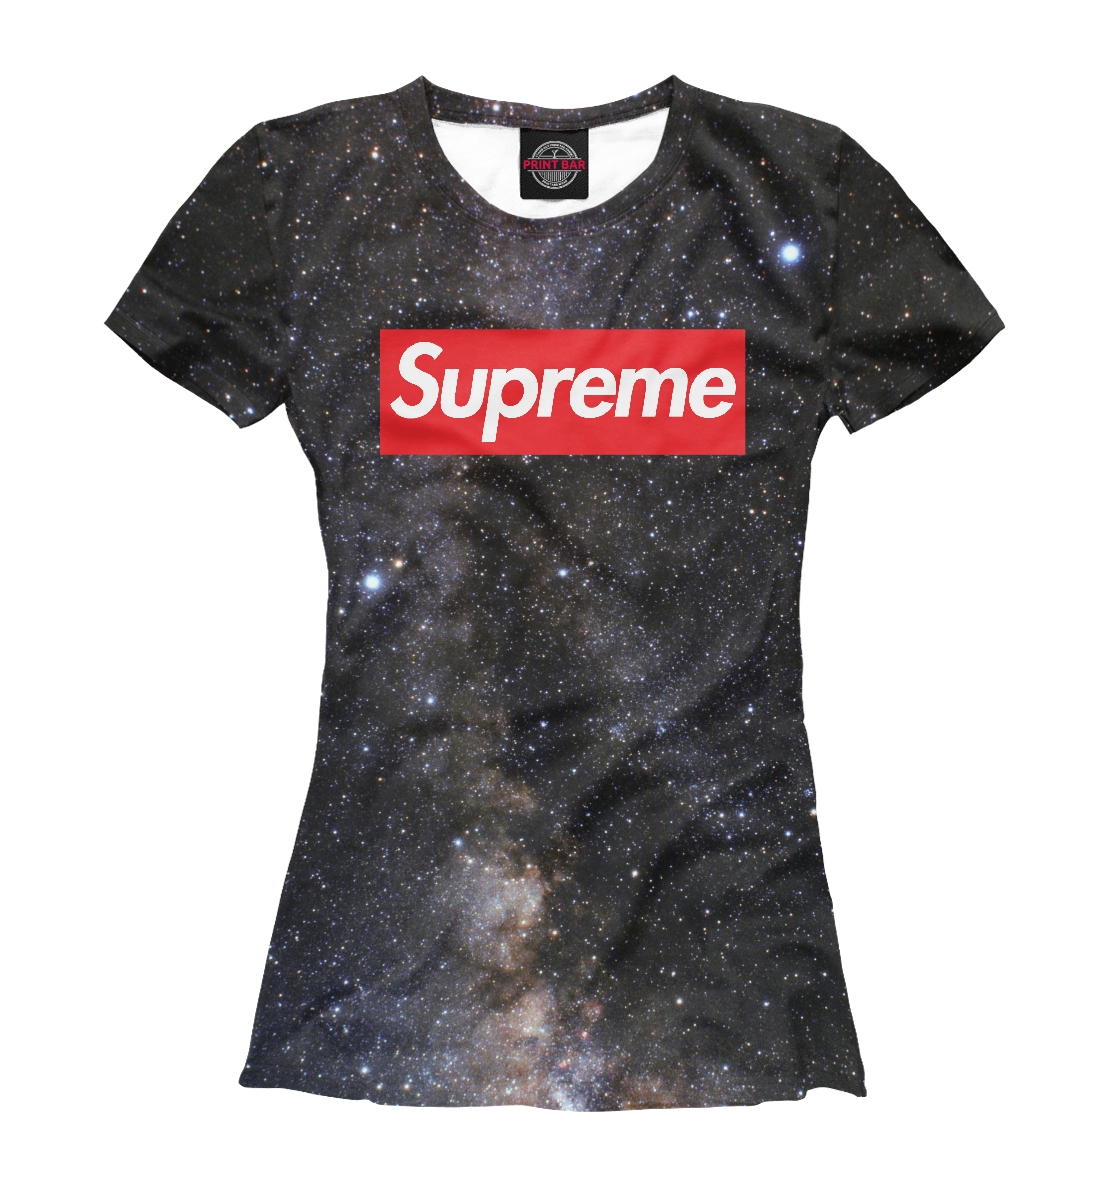 Купить Black space supreme, Printbar, Футболки, SPR-333928-fut-1